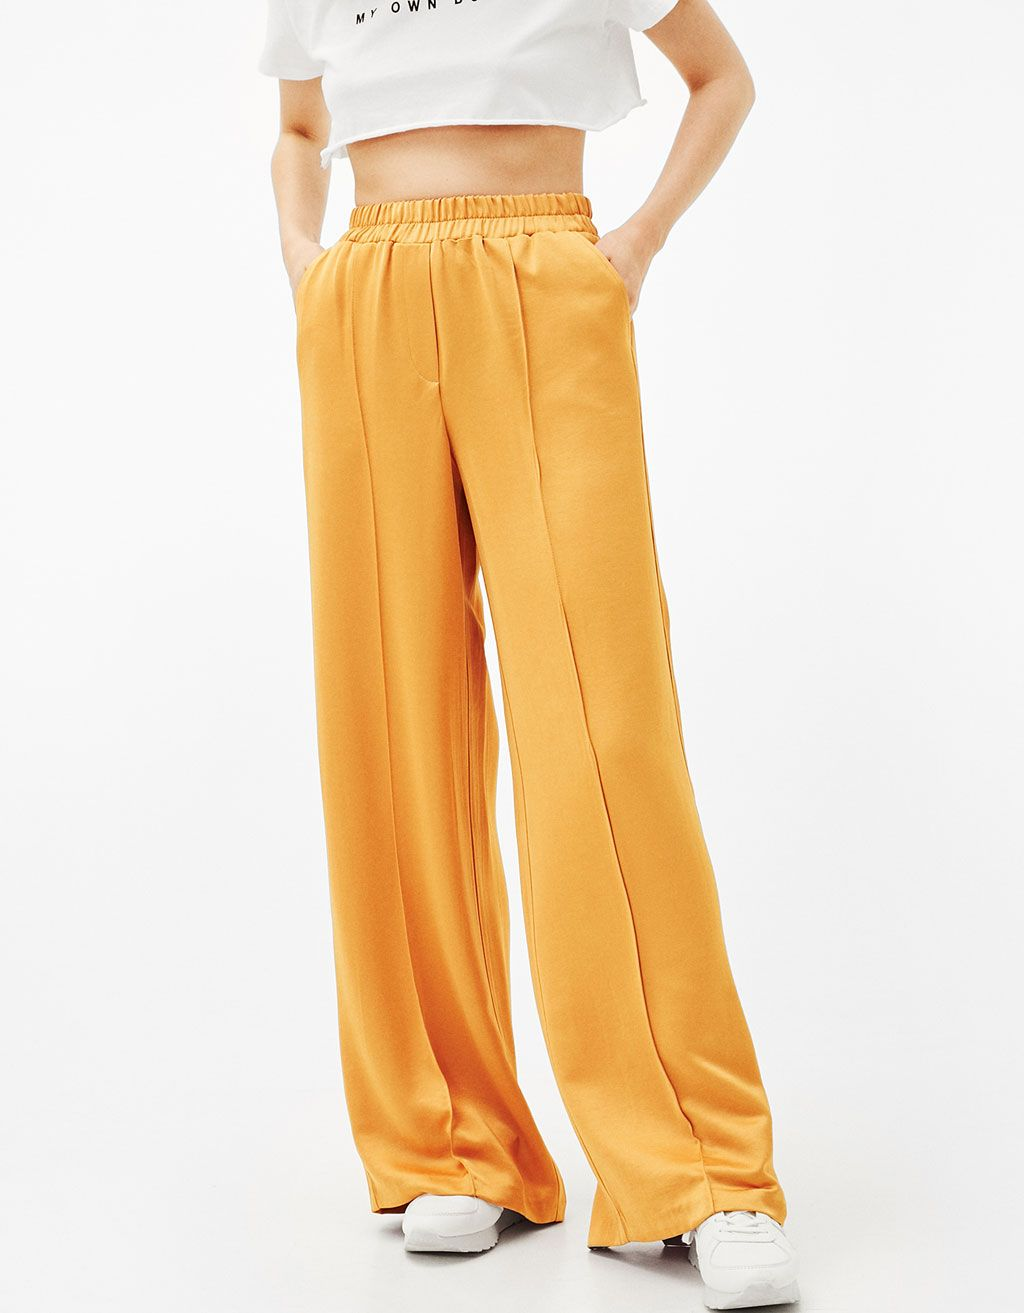 Pantalon large satin - Pantalons - Bershka France